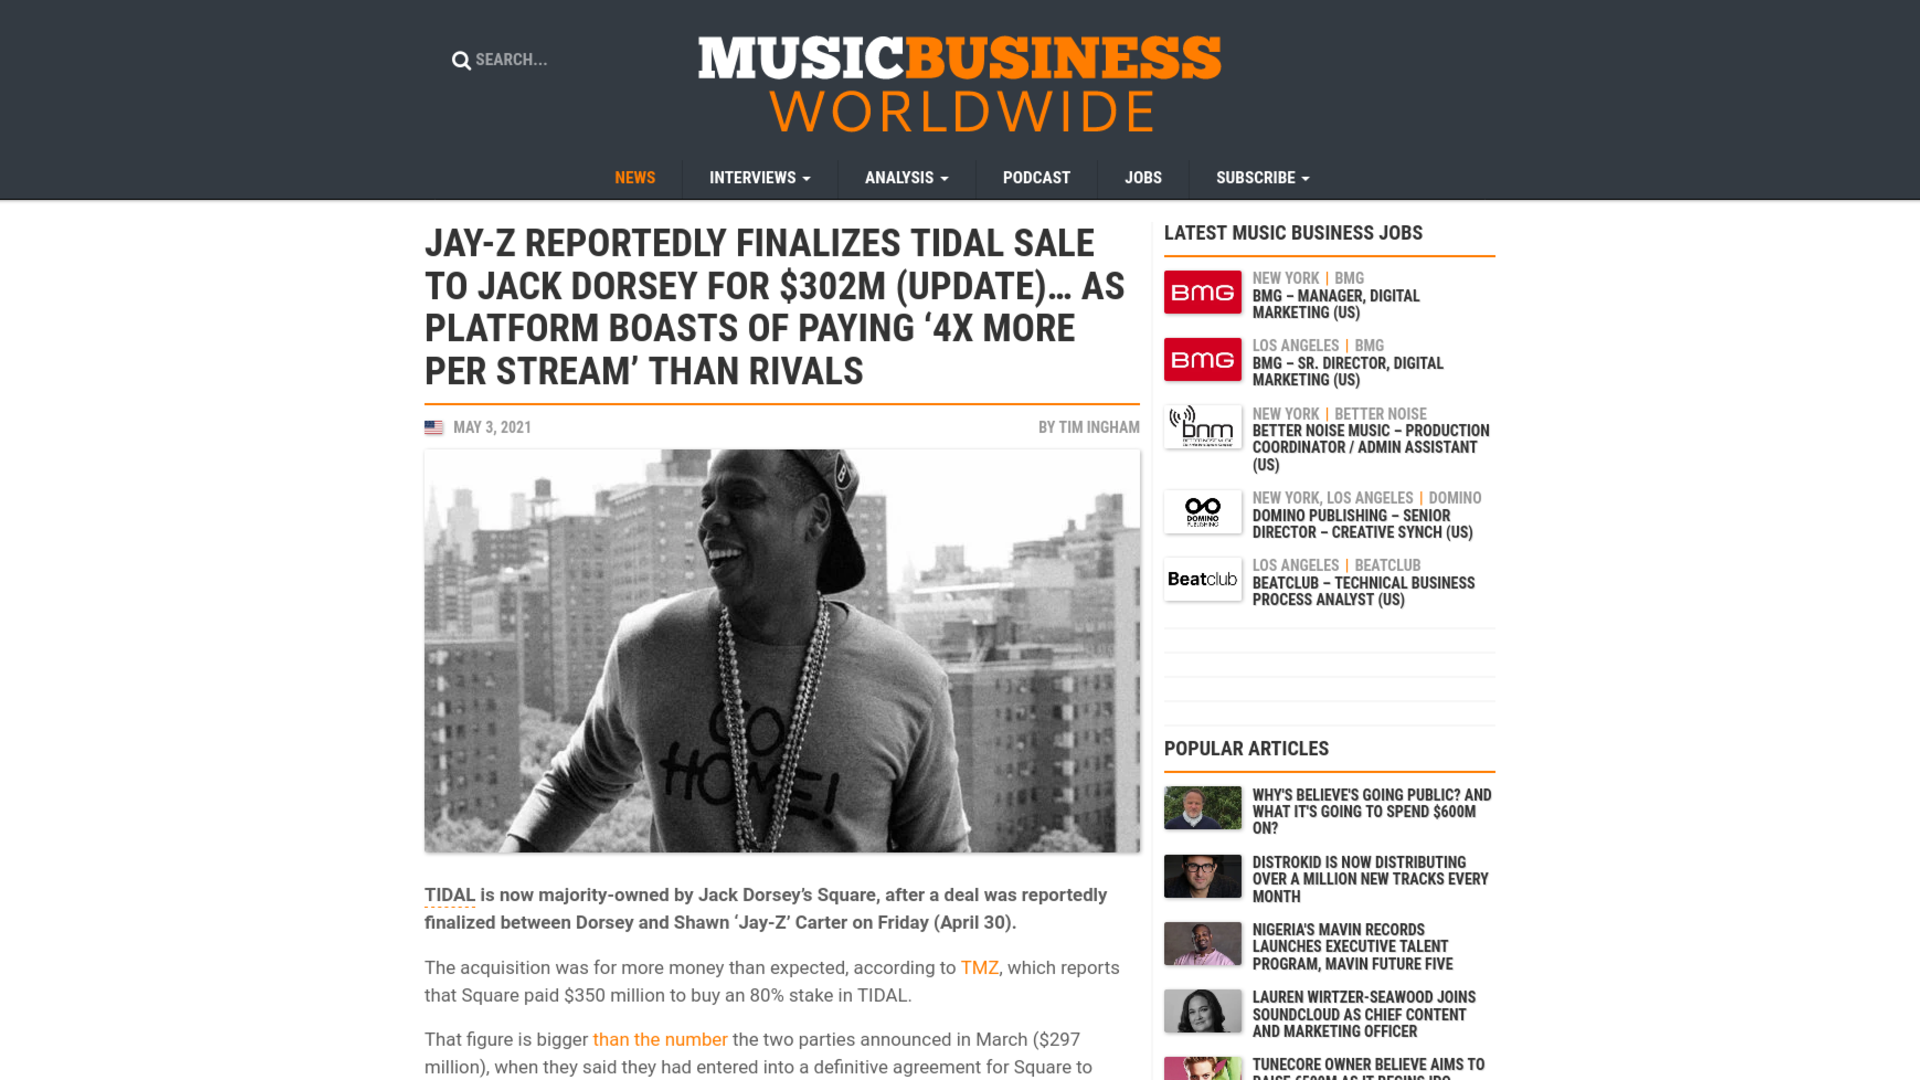 Fairness Rocks News Jay-Z reportedly finalizes TIDAL sale to Jack Dorsey for $302m (UPDATE)… as platform boasts of paying '4X more per stream' than rivals